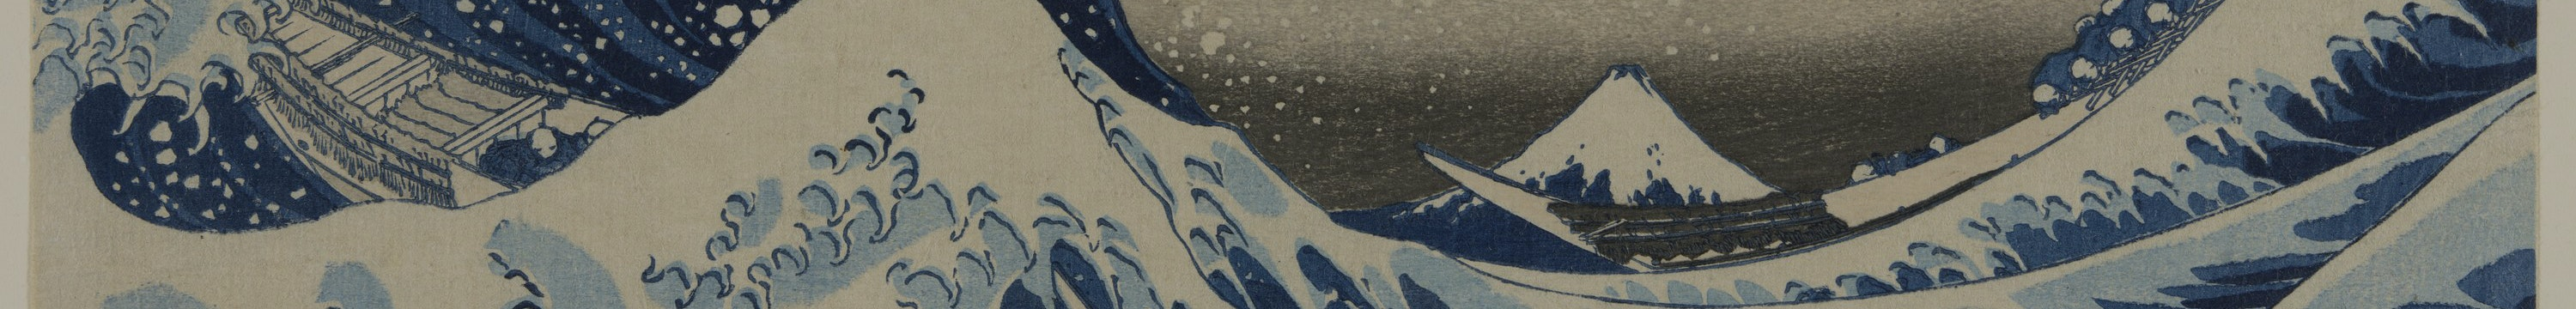 Detail image of blue and white waves with a mountain top in the distant background, 1925.3245